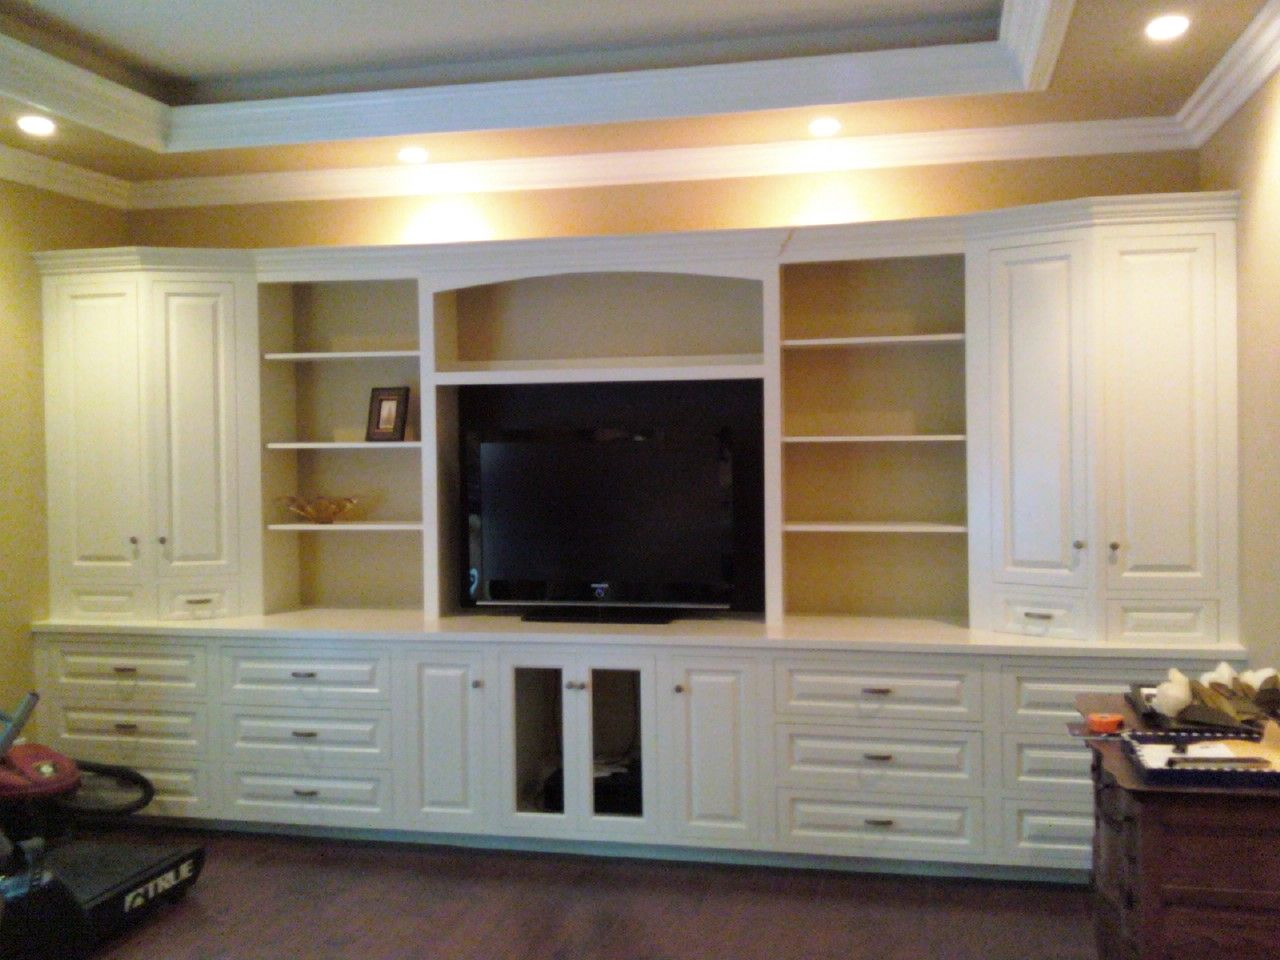 Living Room Wall Units With Storage Wall Units Design Ideas Downstair